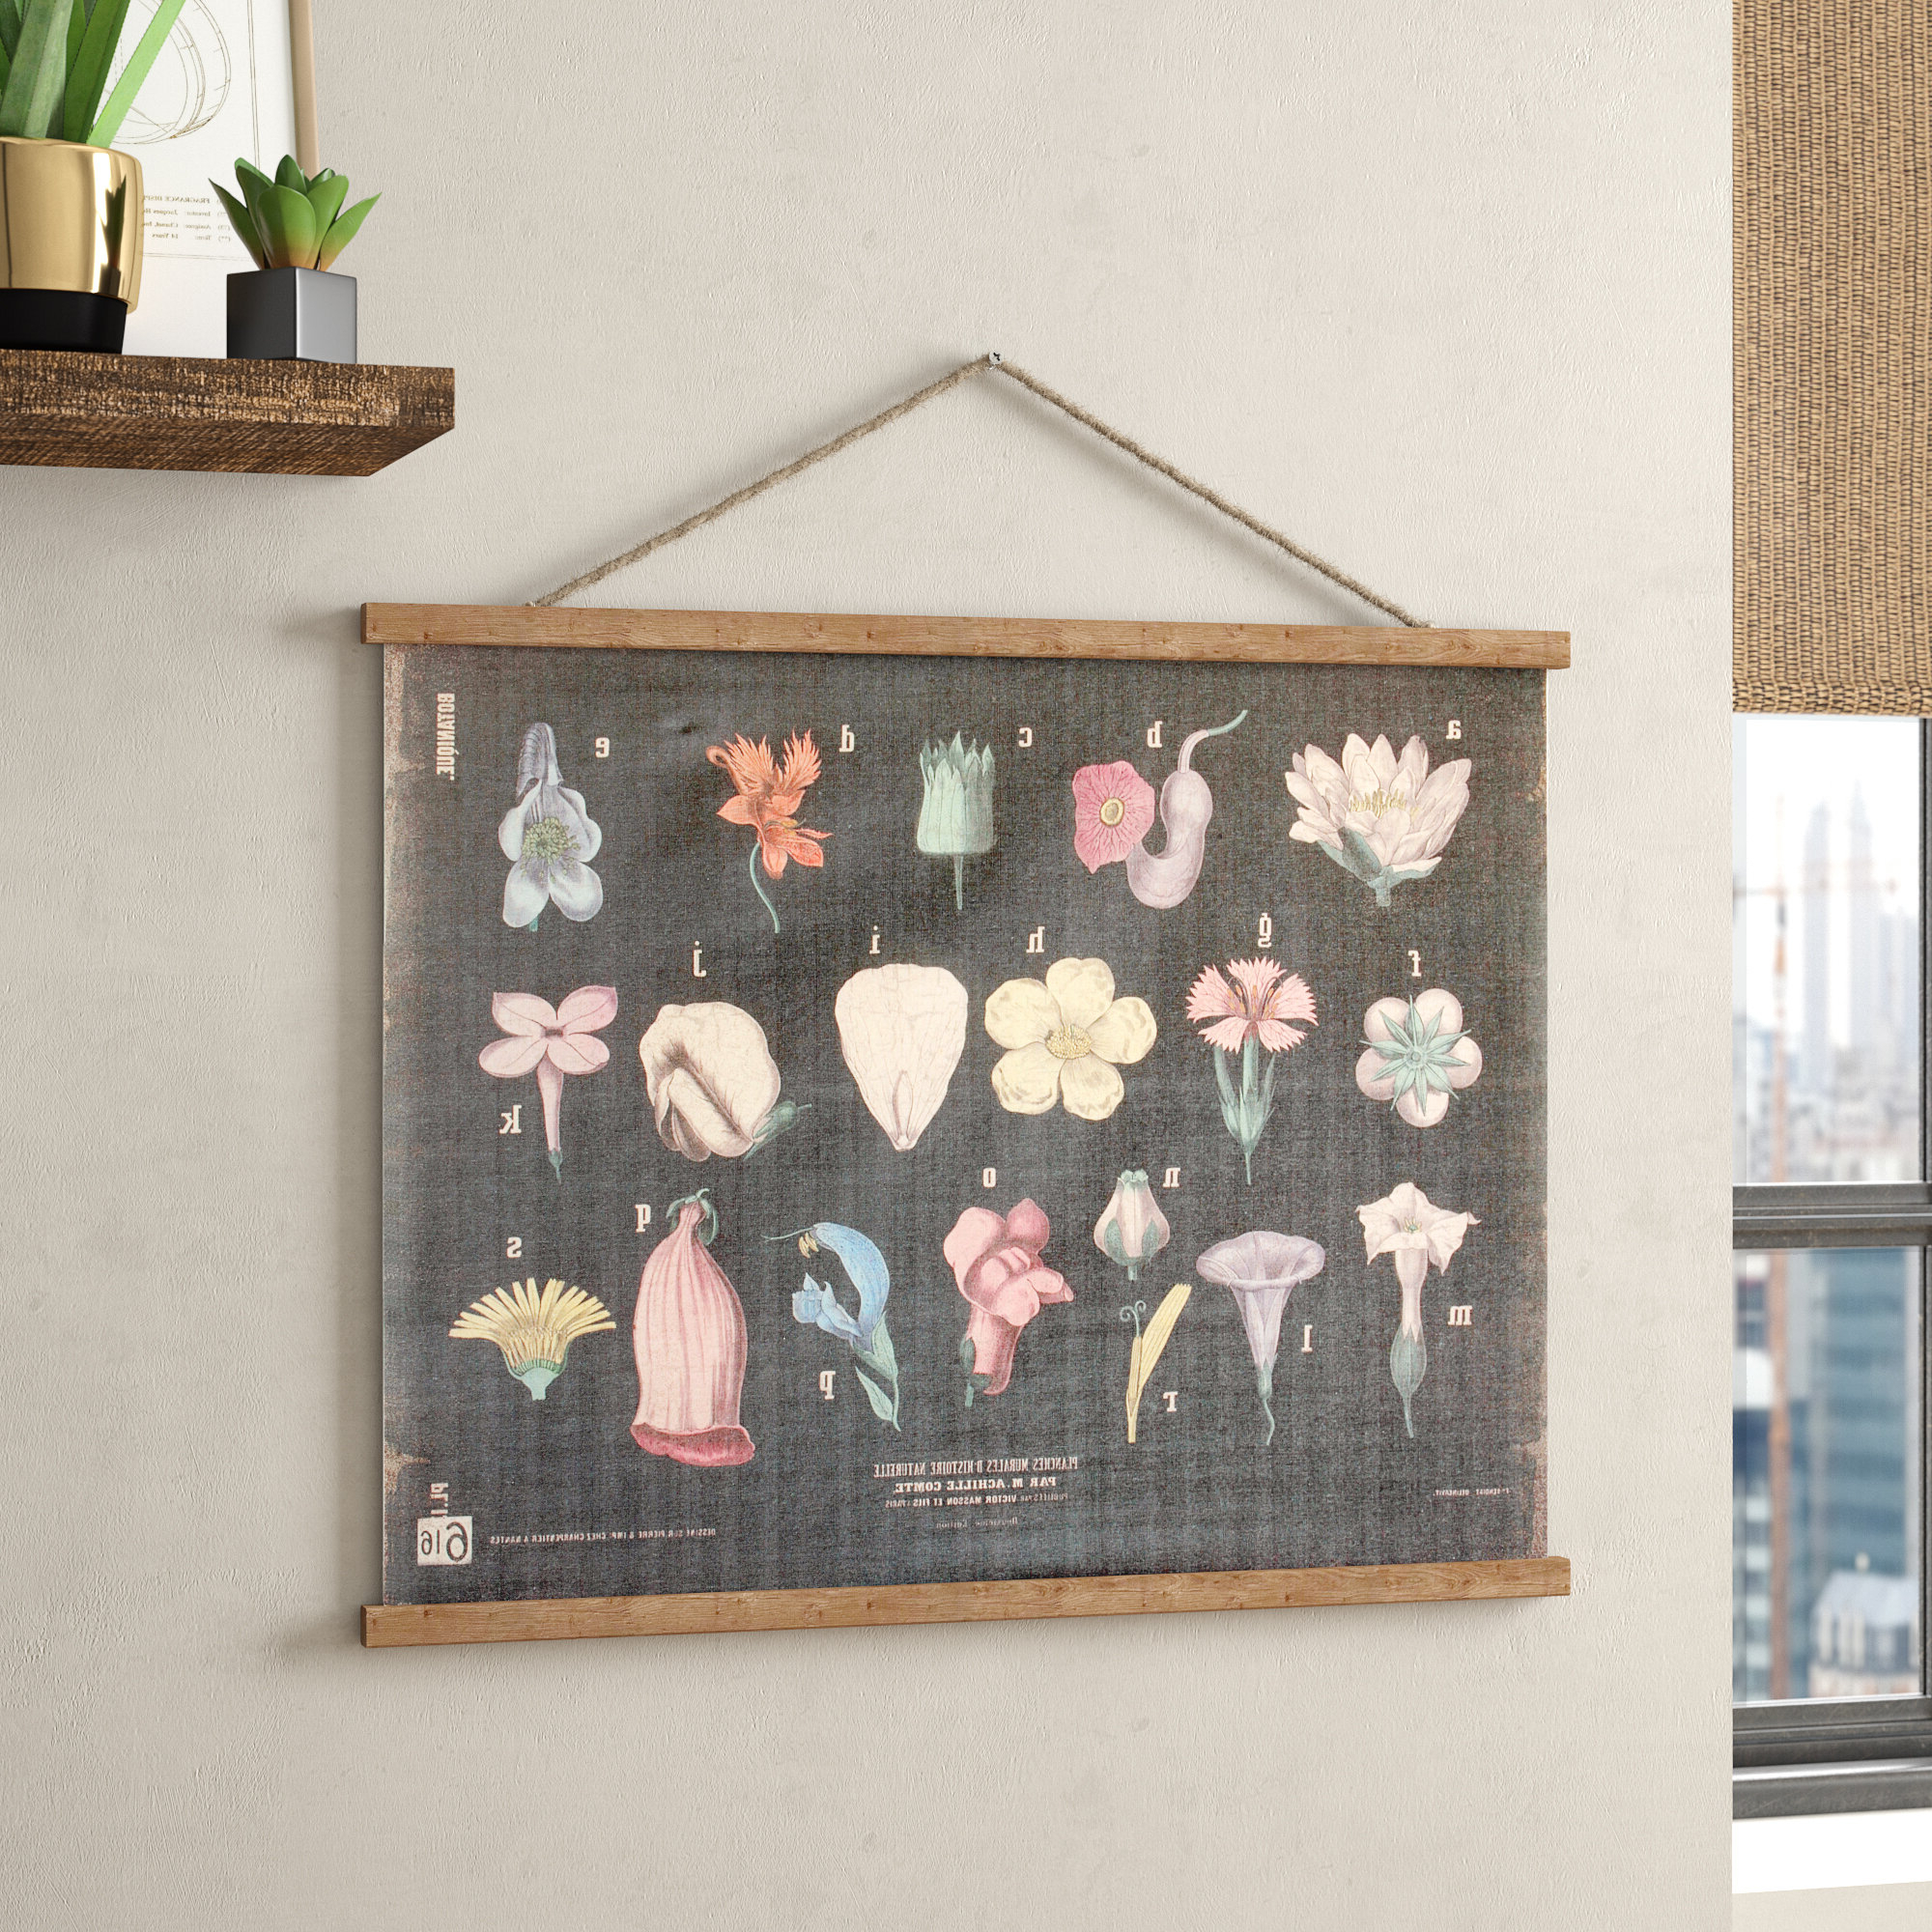 Wayfair With Regard To Blended Fabric Fruity Bouquets Wall Hangings (View 2 of 20)